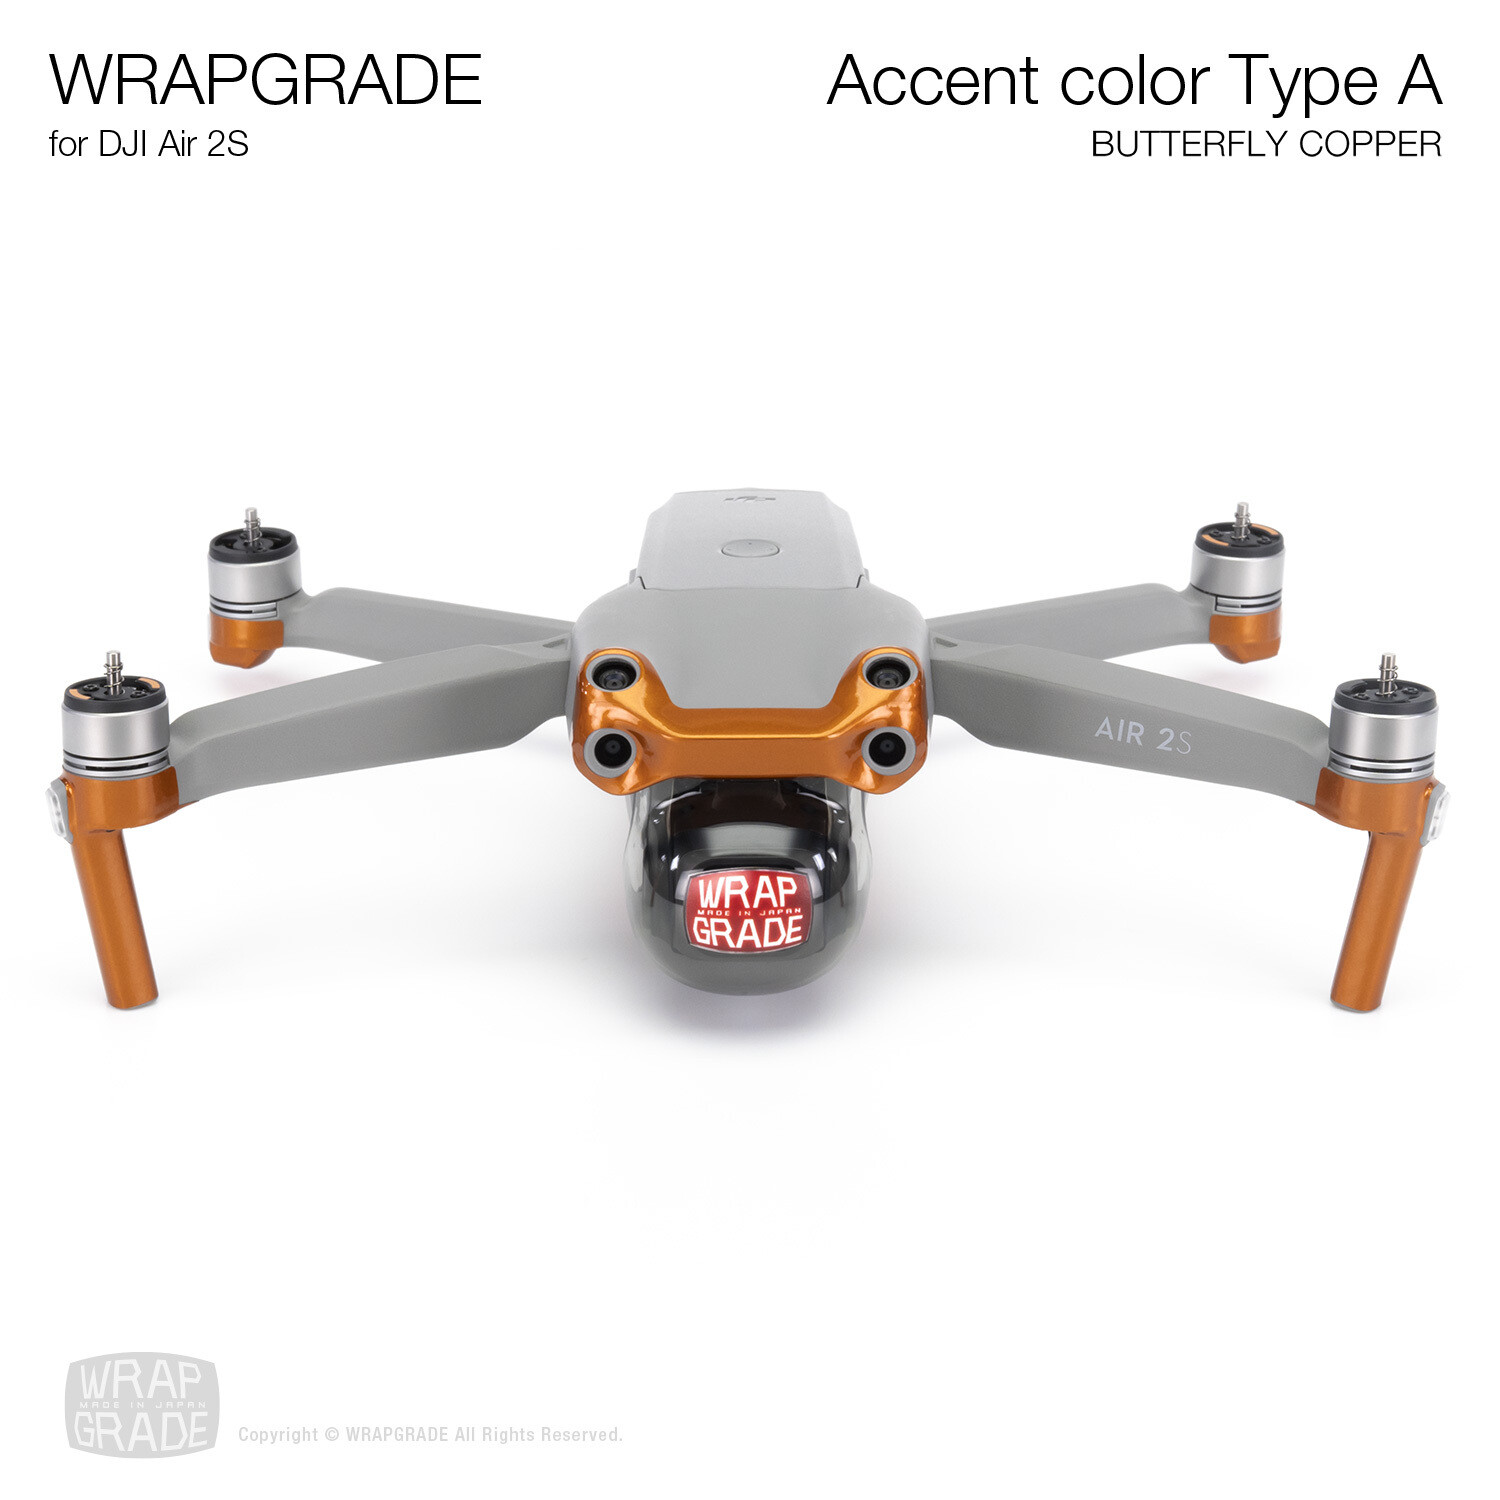 Wrapgrade Skin for DJI Air 2S | Accent Color A (BUTTERFLY COPPER)